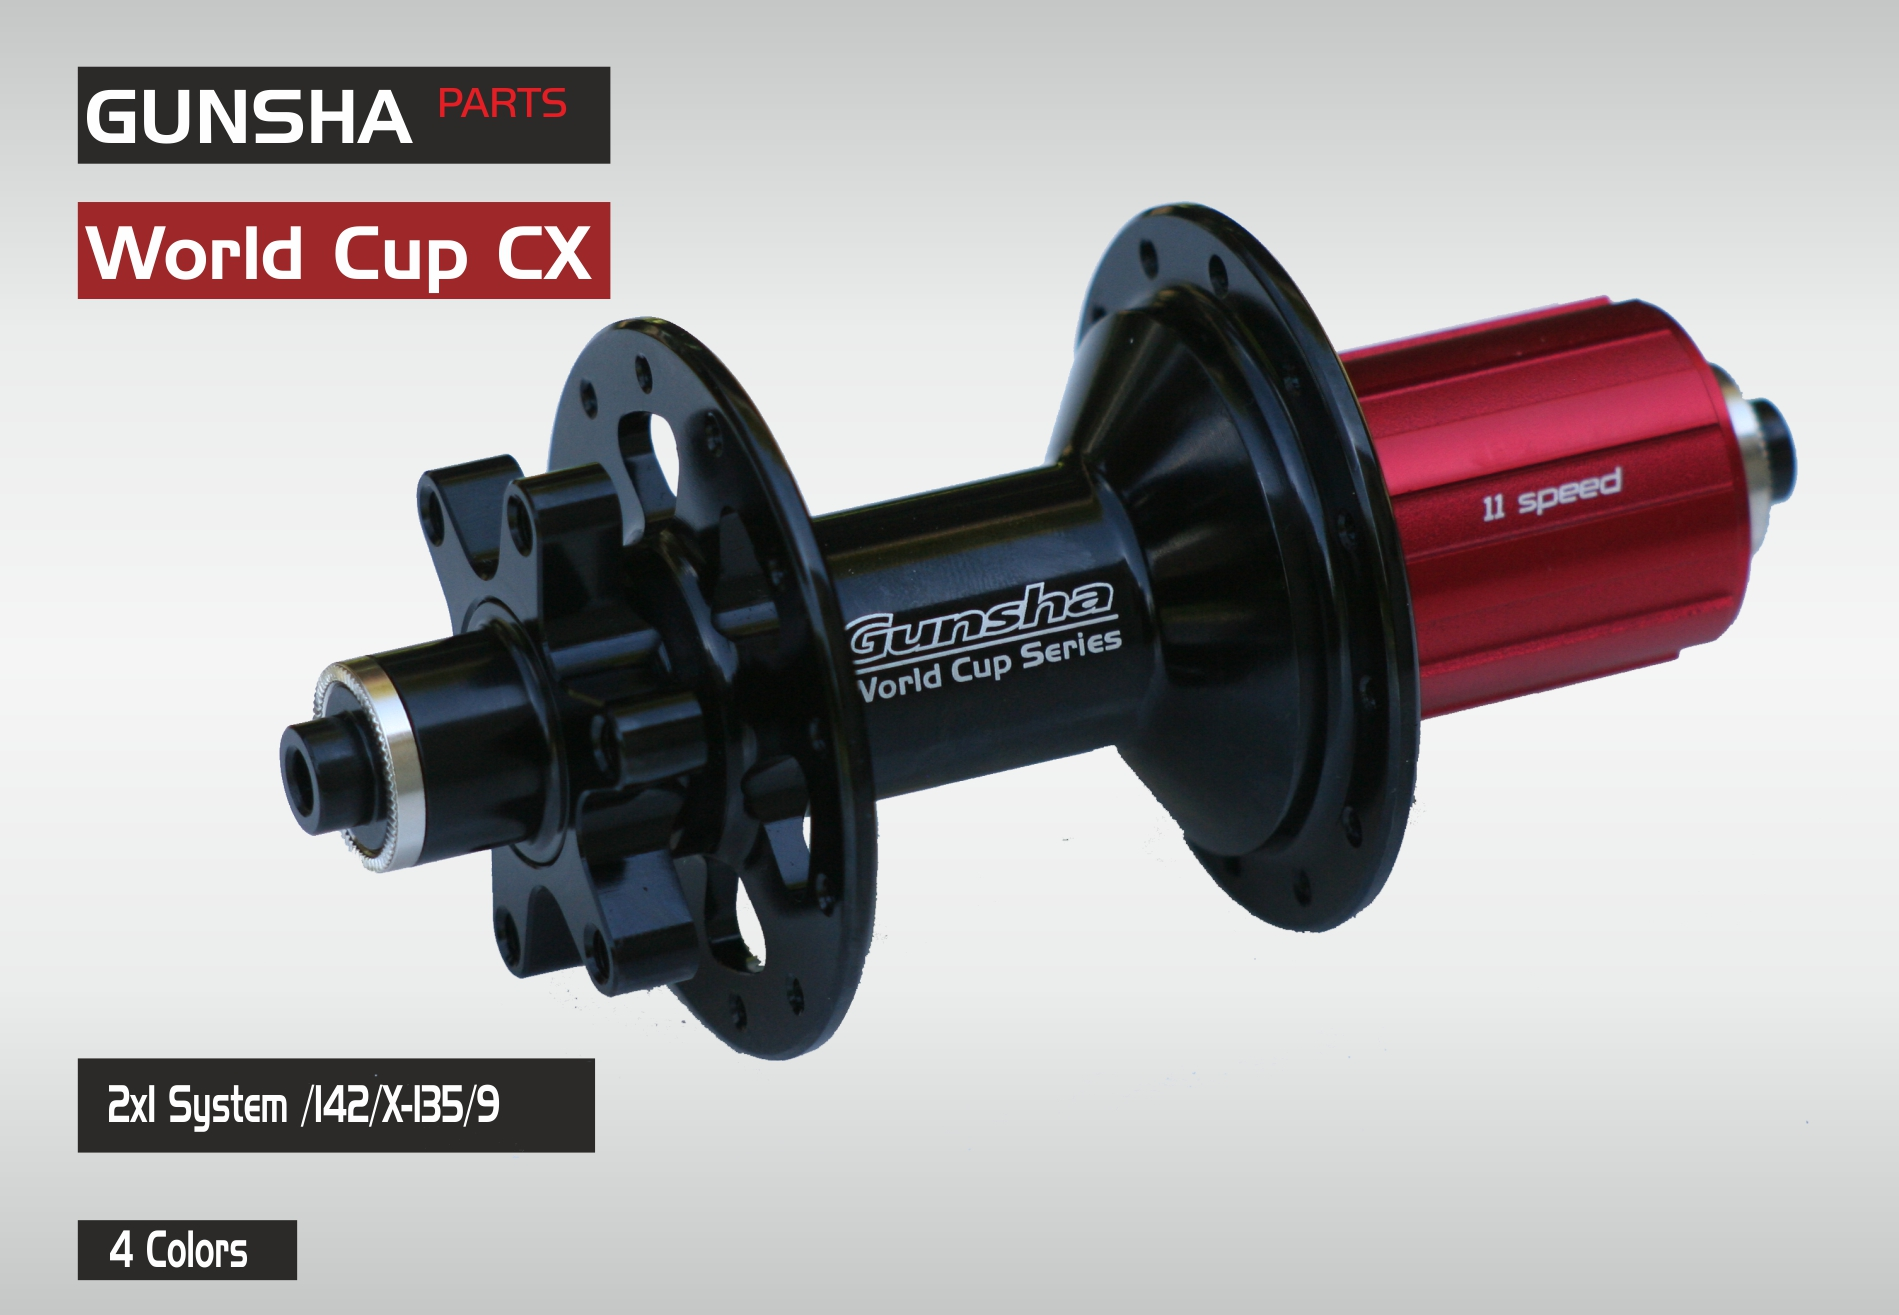 Gunsha HR Nabe World Cup CX Disc 1.7  (2x1 System)